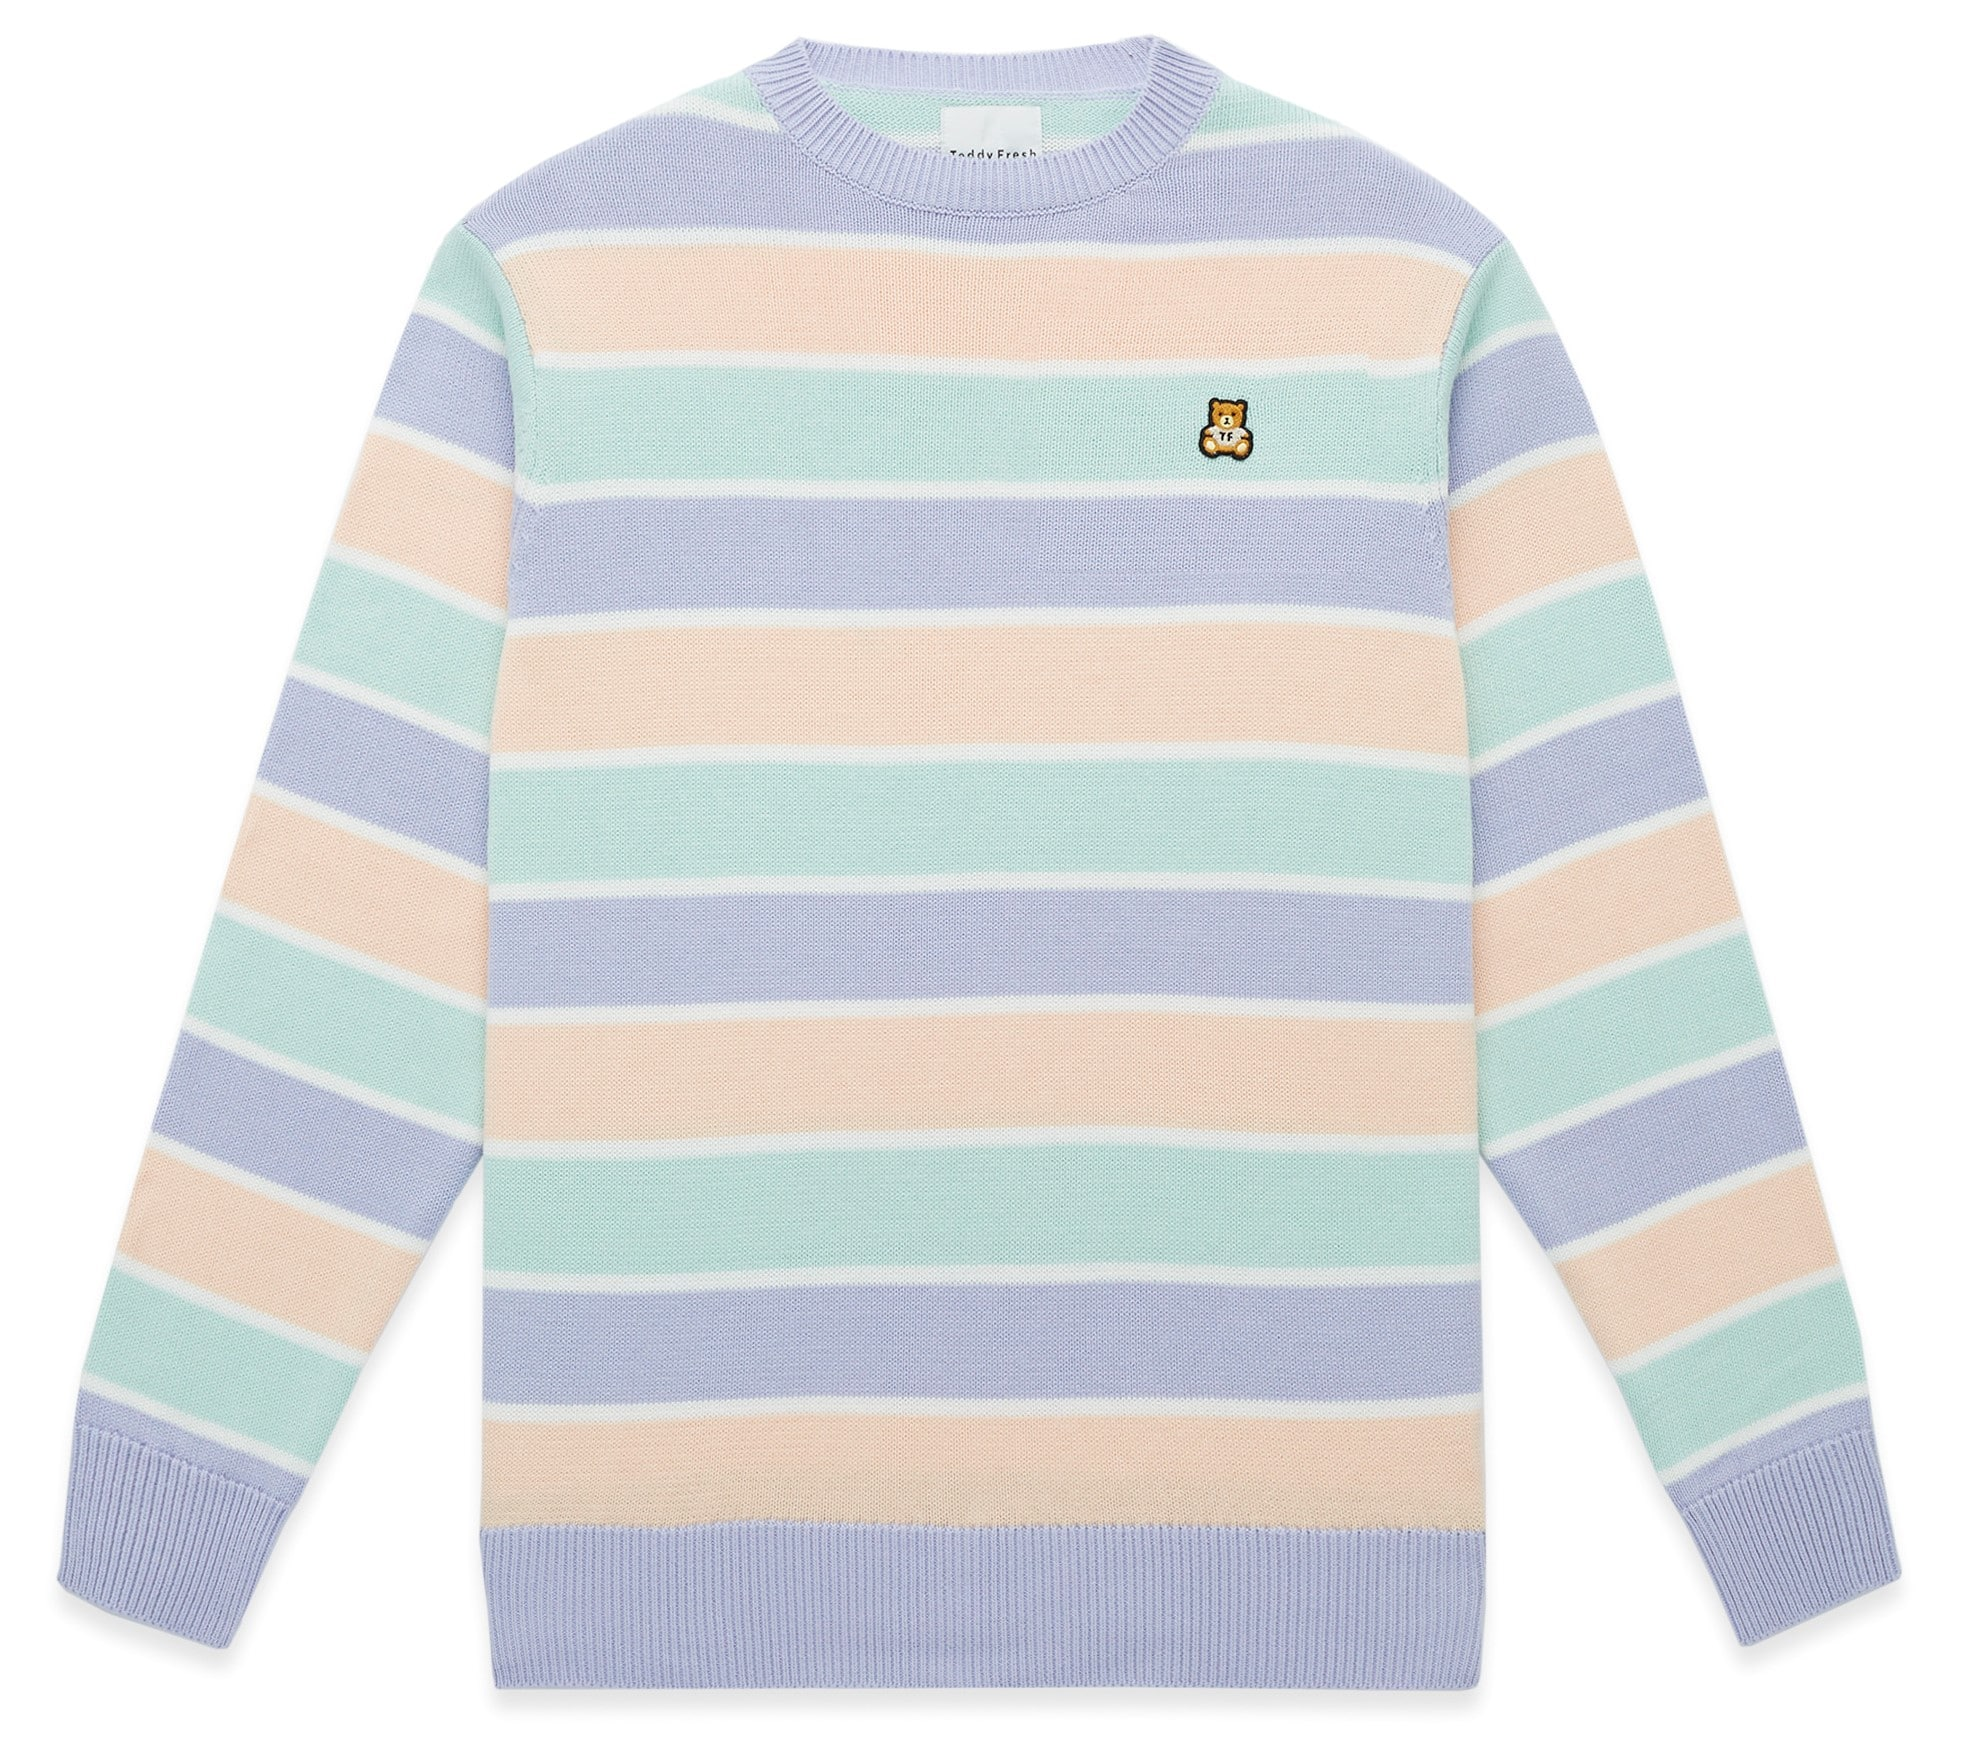 Teddy Fresh doubles down on pastel-colored outerwear for its February collection 16